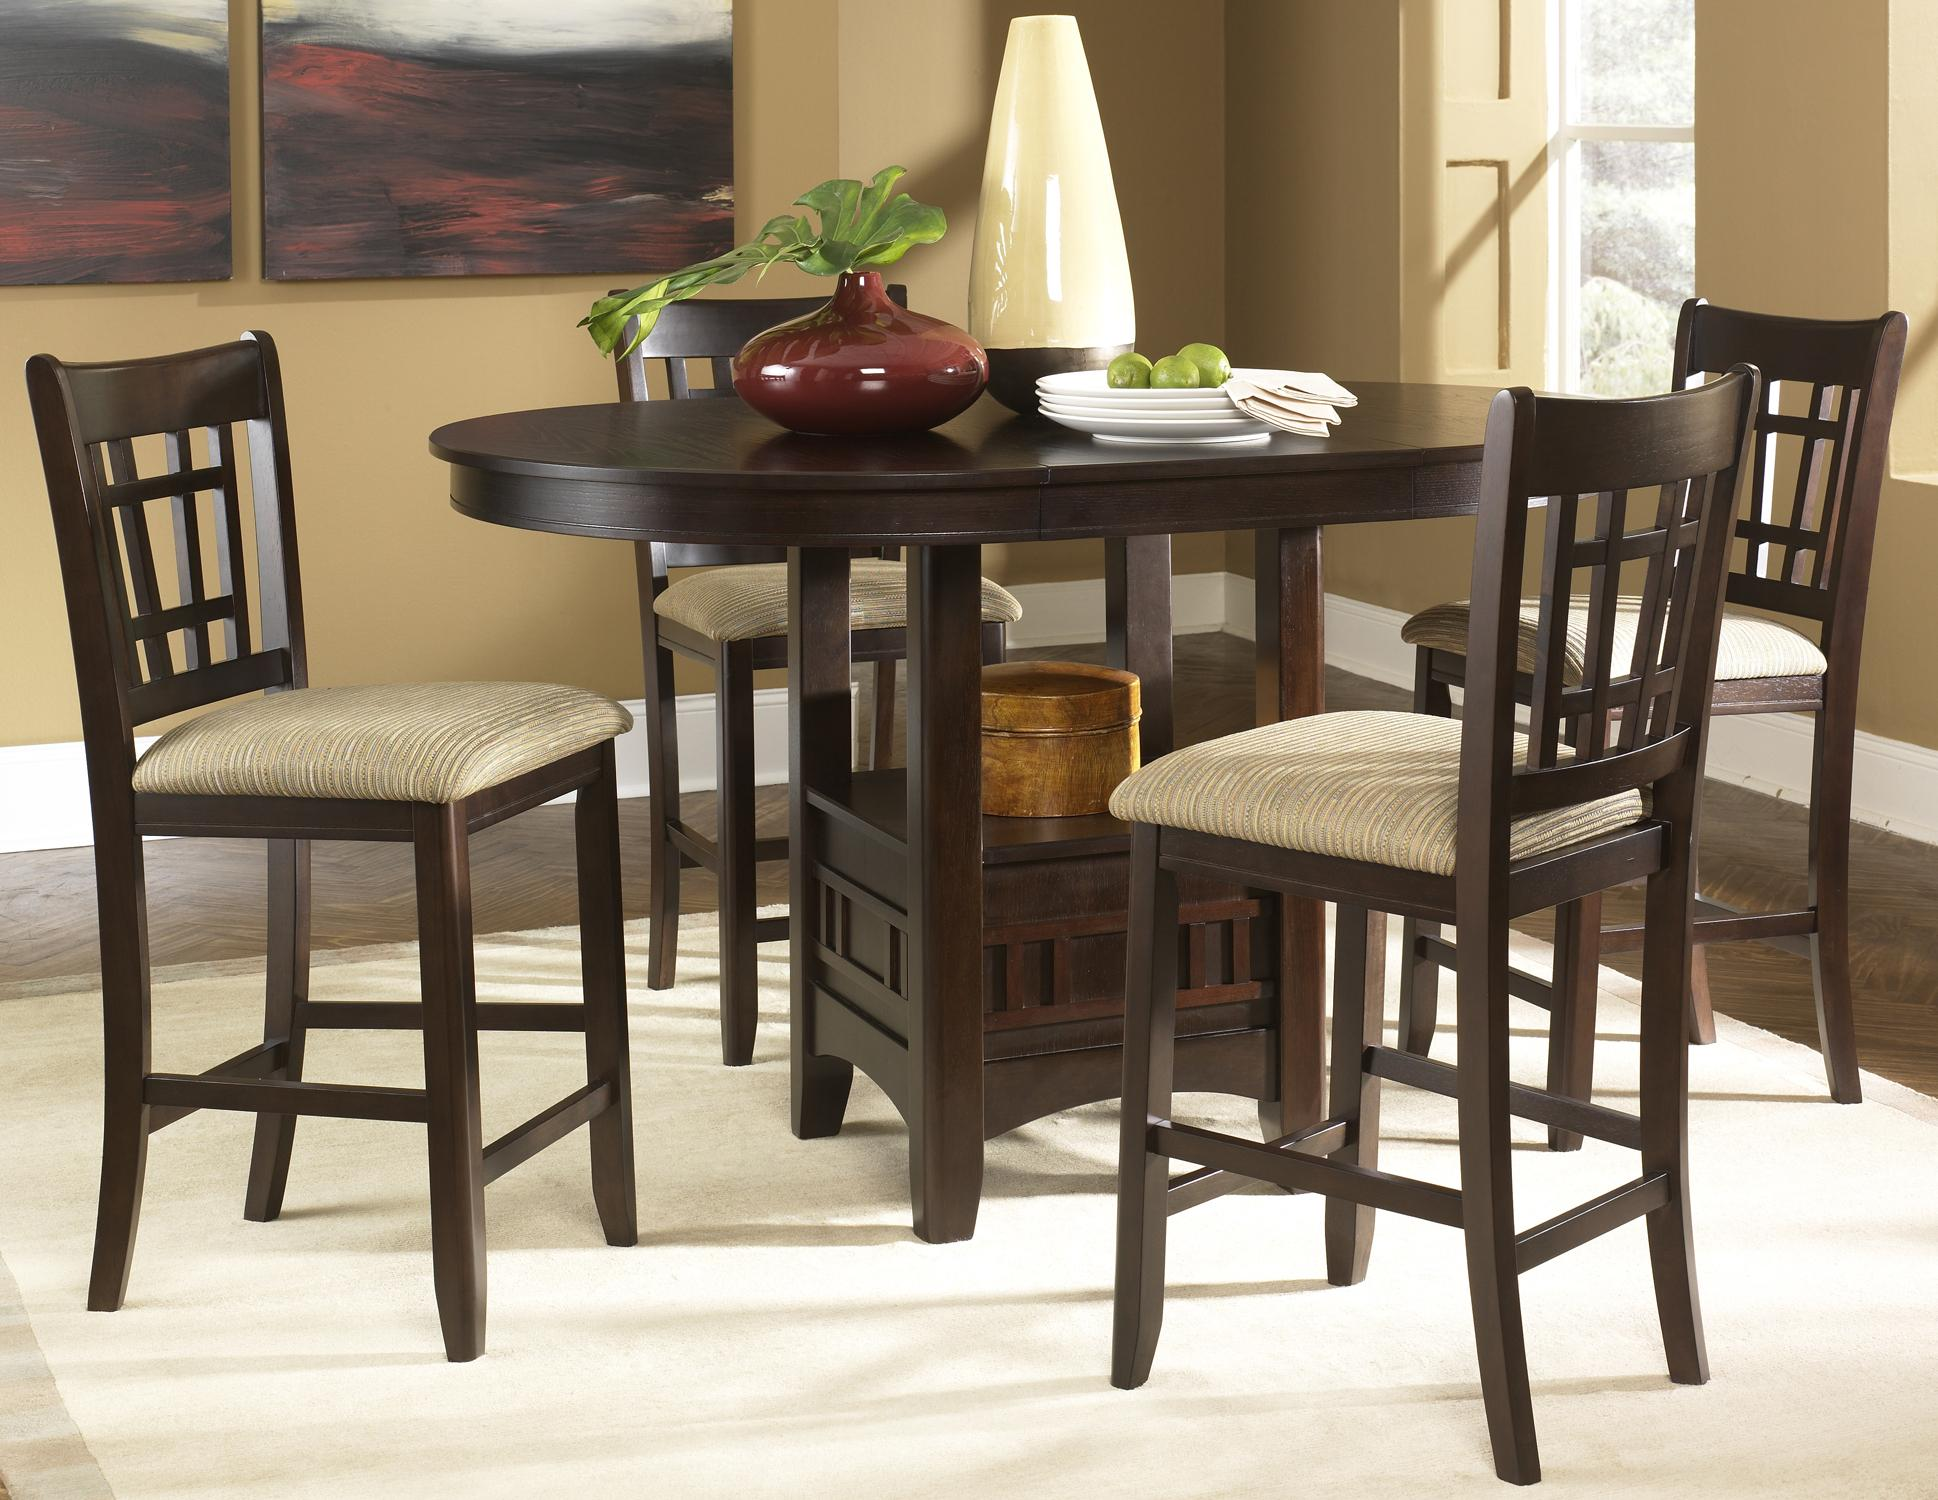 Oval Pub Table 24 Inch Upholstered Bar Stool Set By